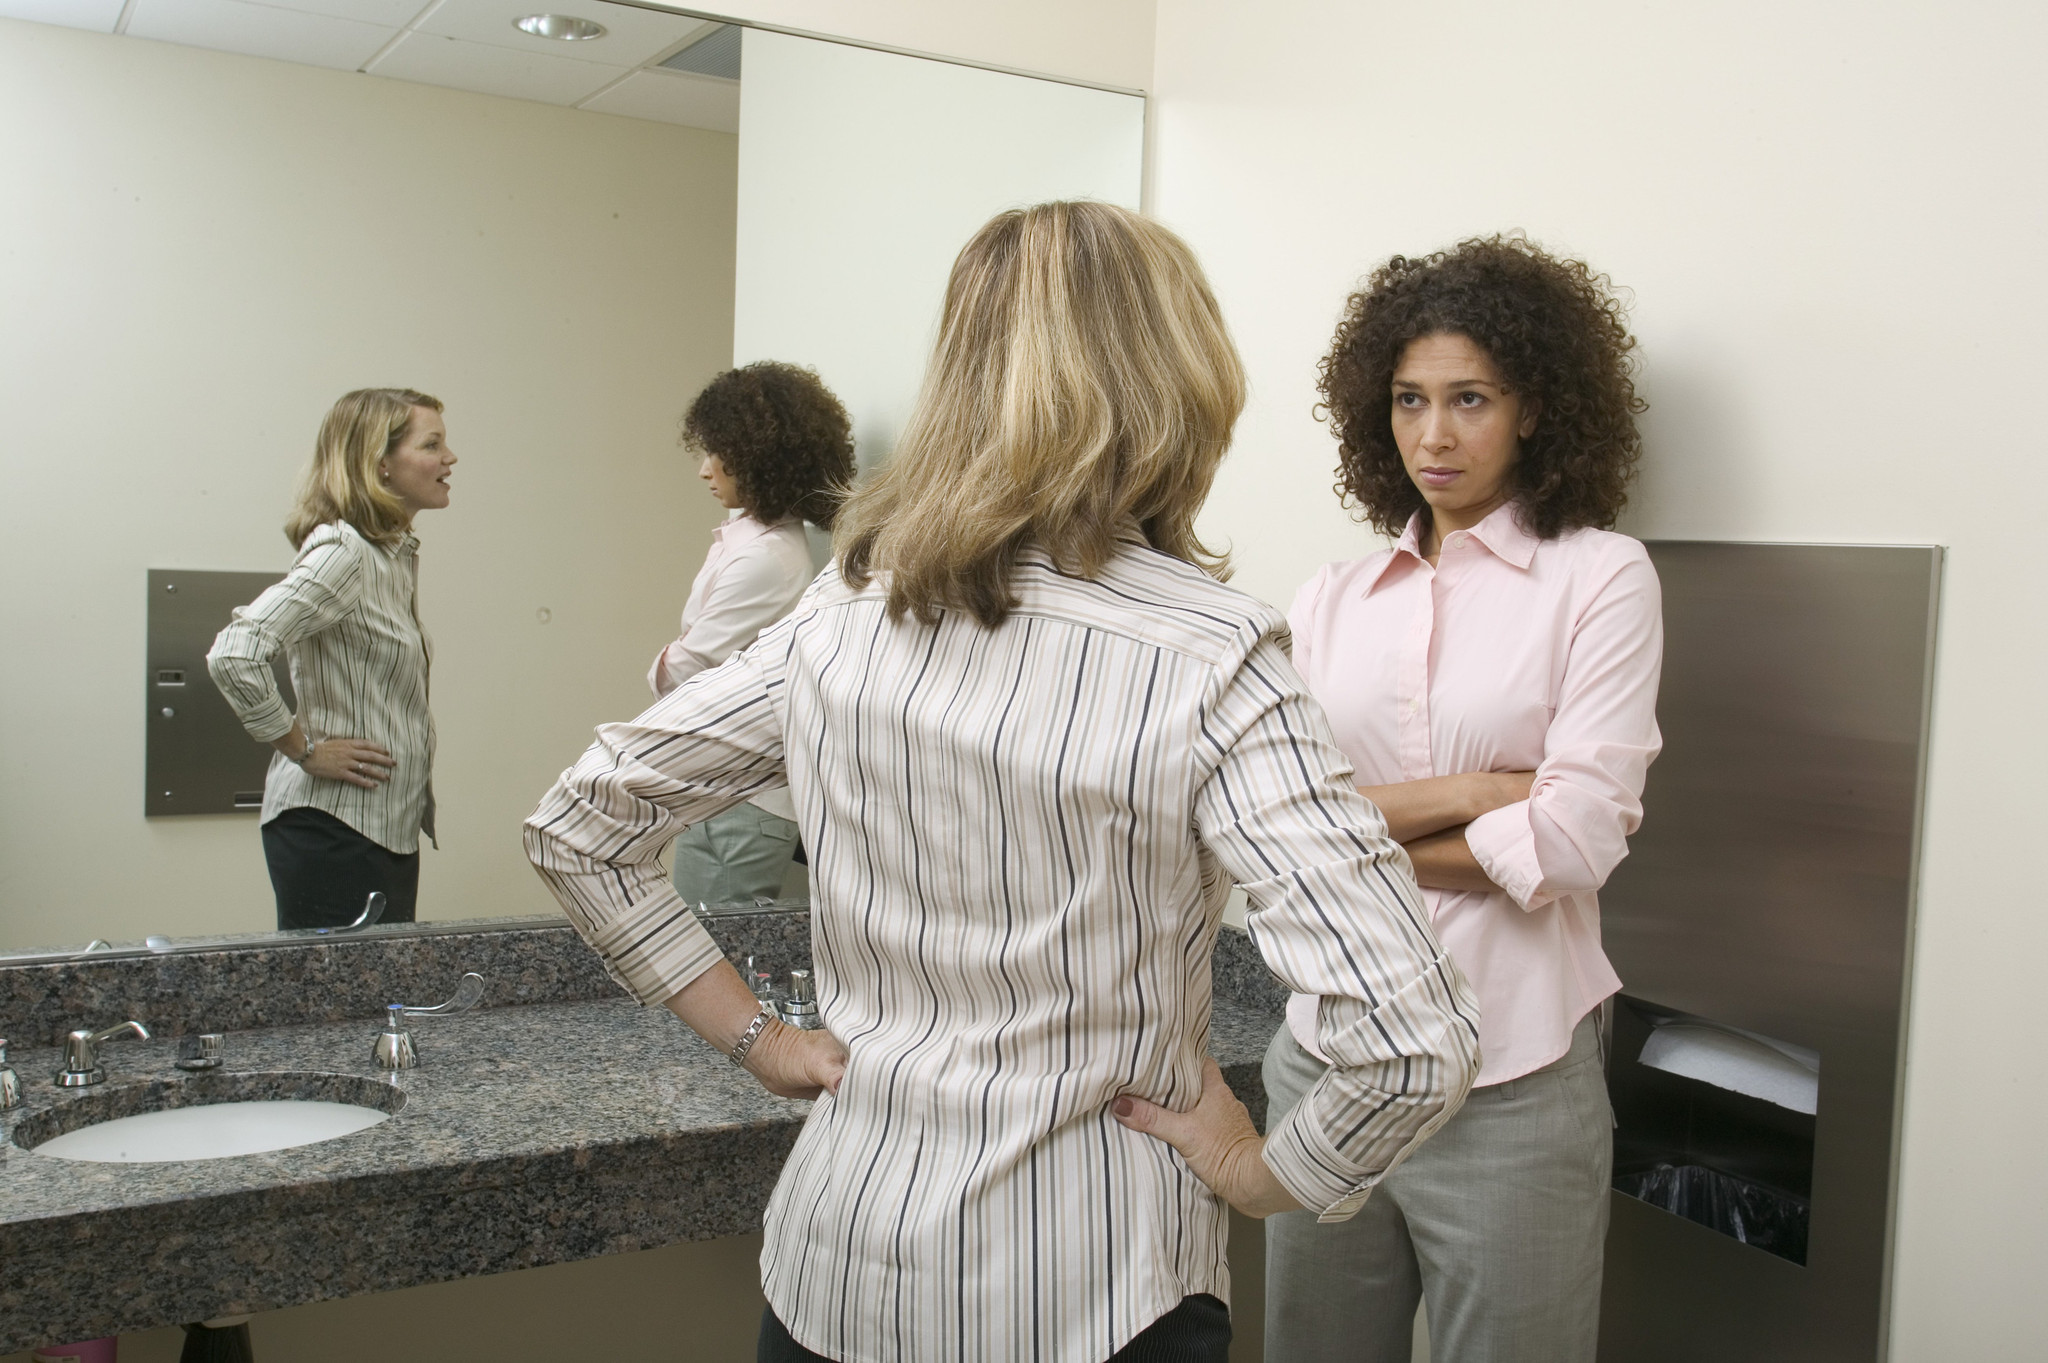 The impact of workplace bullying